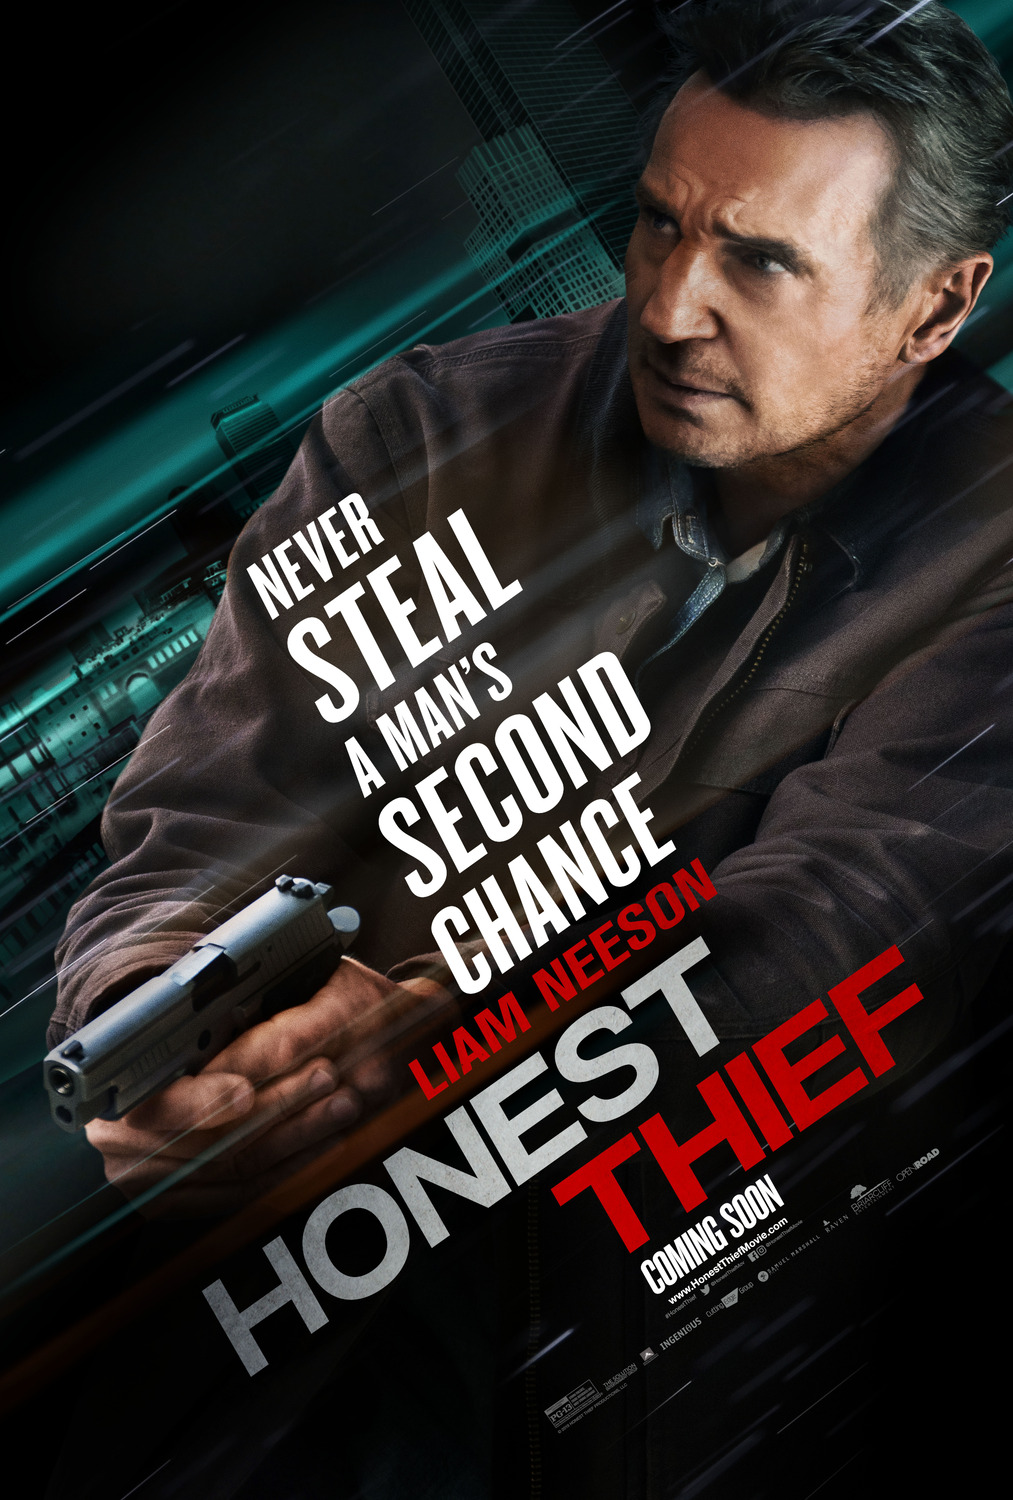 The Honest Thief poster starring Liam Neeson